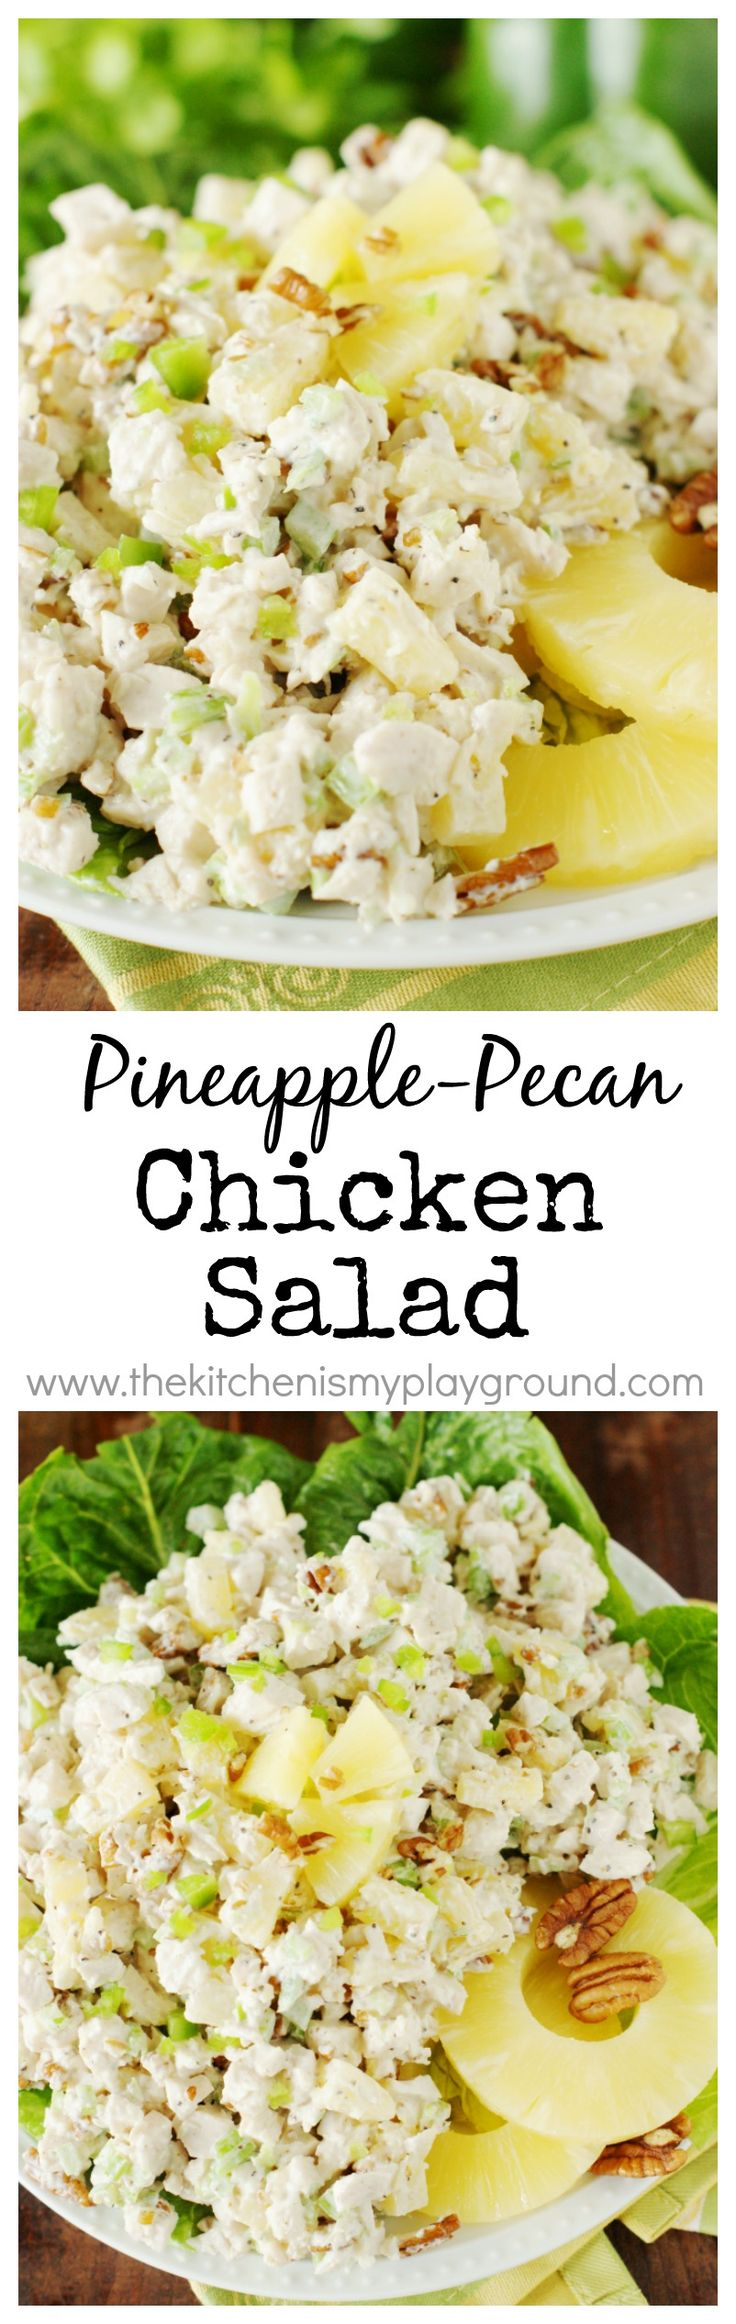 This refreshingly tasty chicken salad may just be the perfect chicken salad for summer. Or any time!!